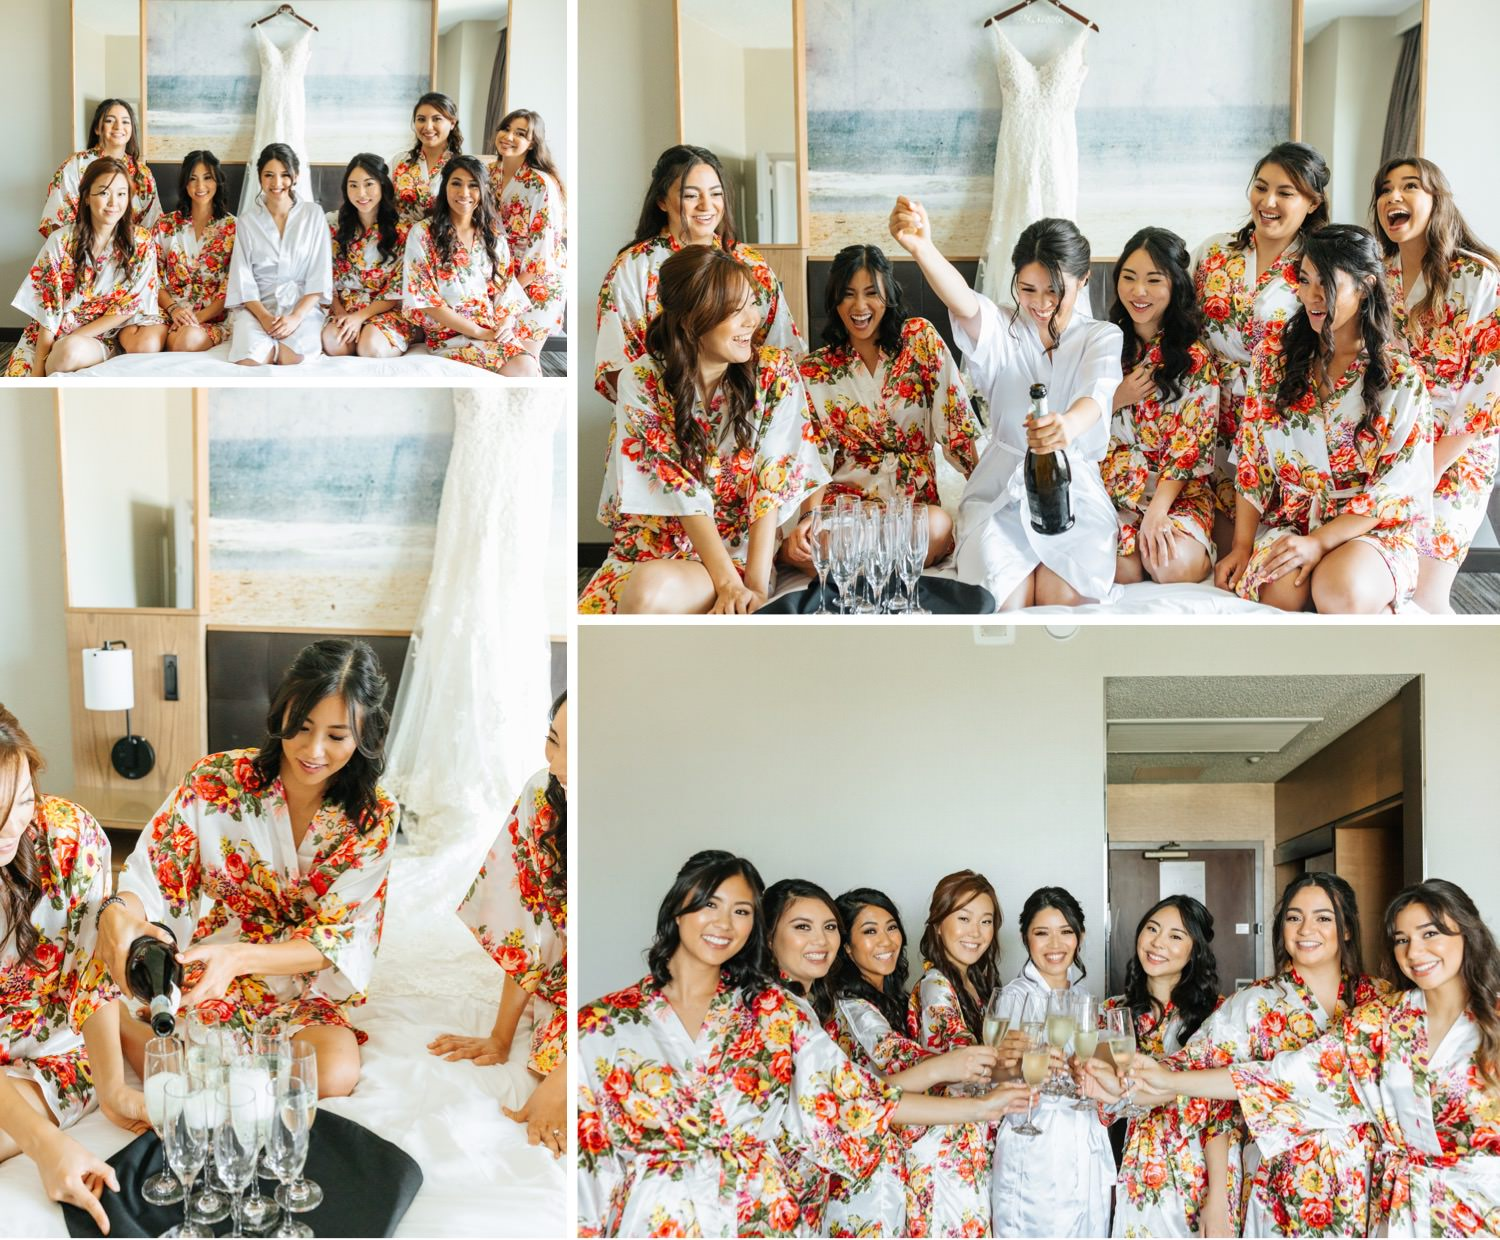 Bride and Bridesmaids popping champagne - Los Angeles Wedding Photography - https://brittneyhannonphotography.com